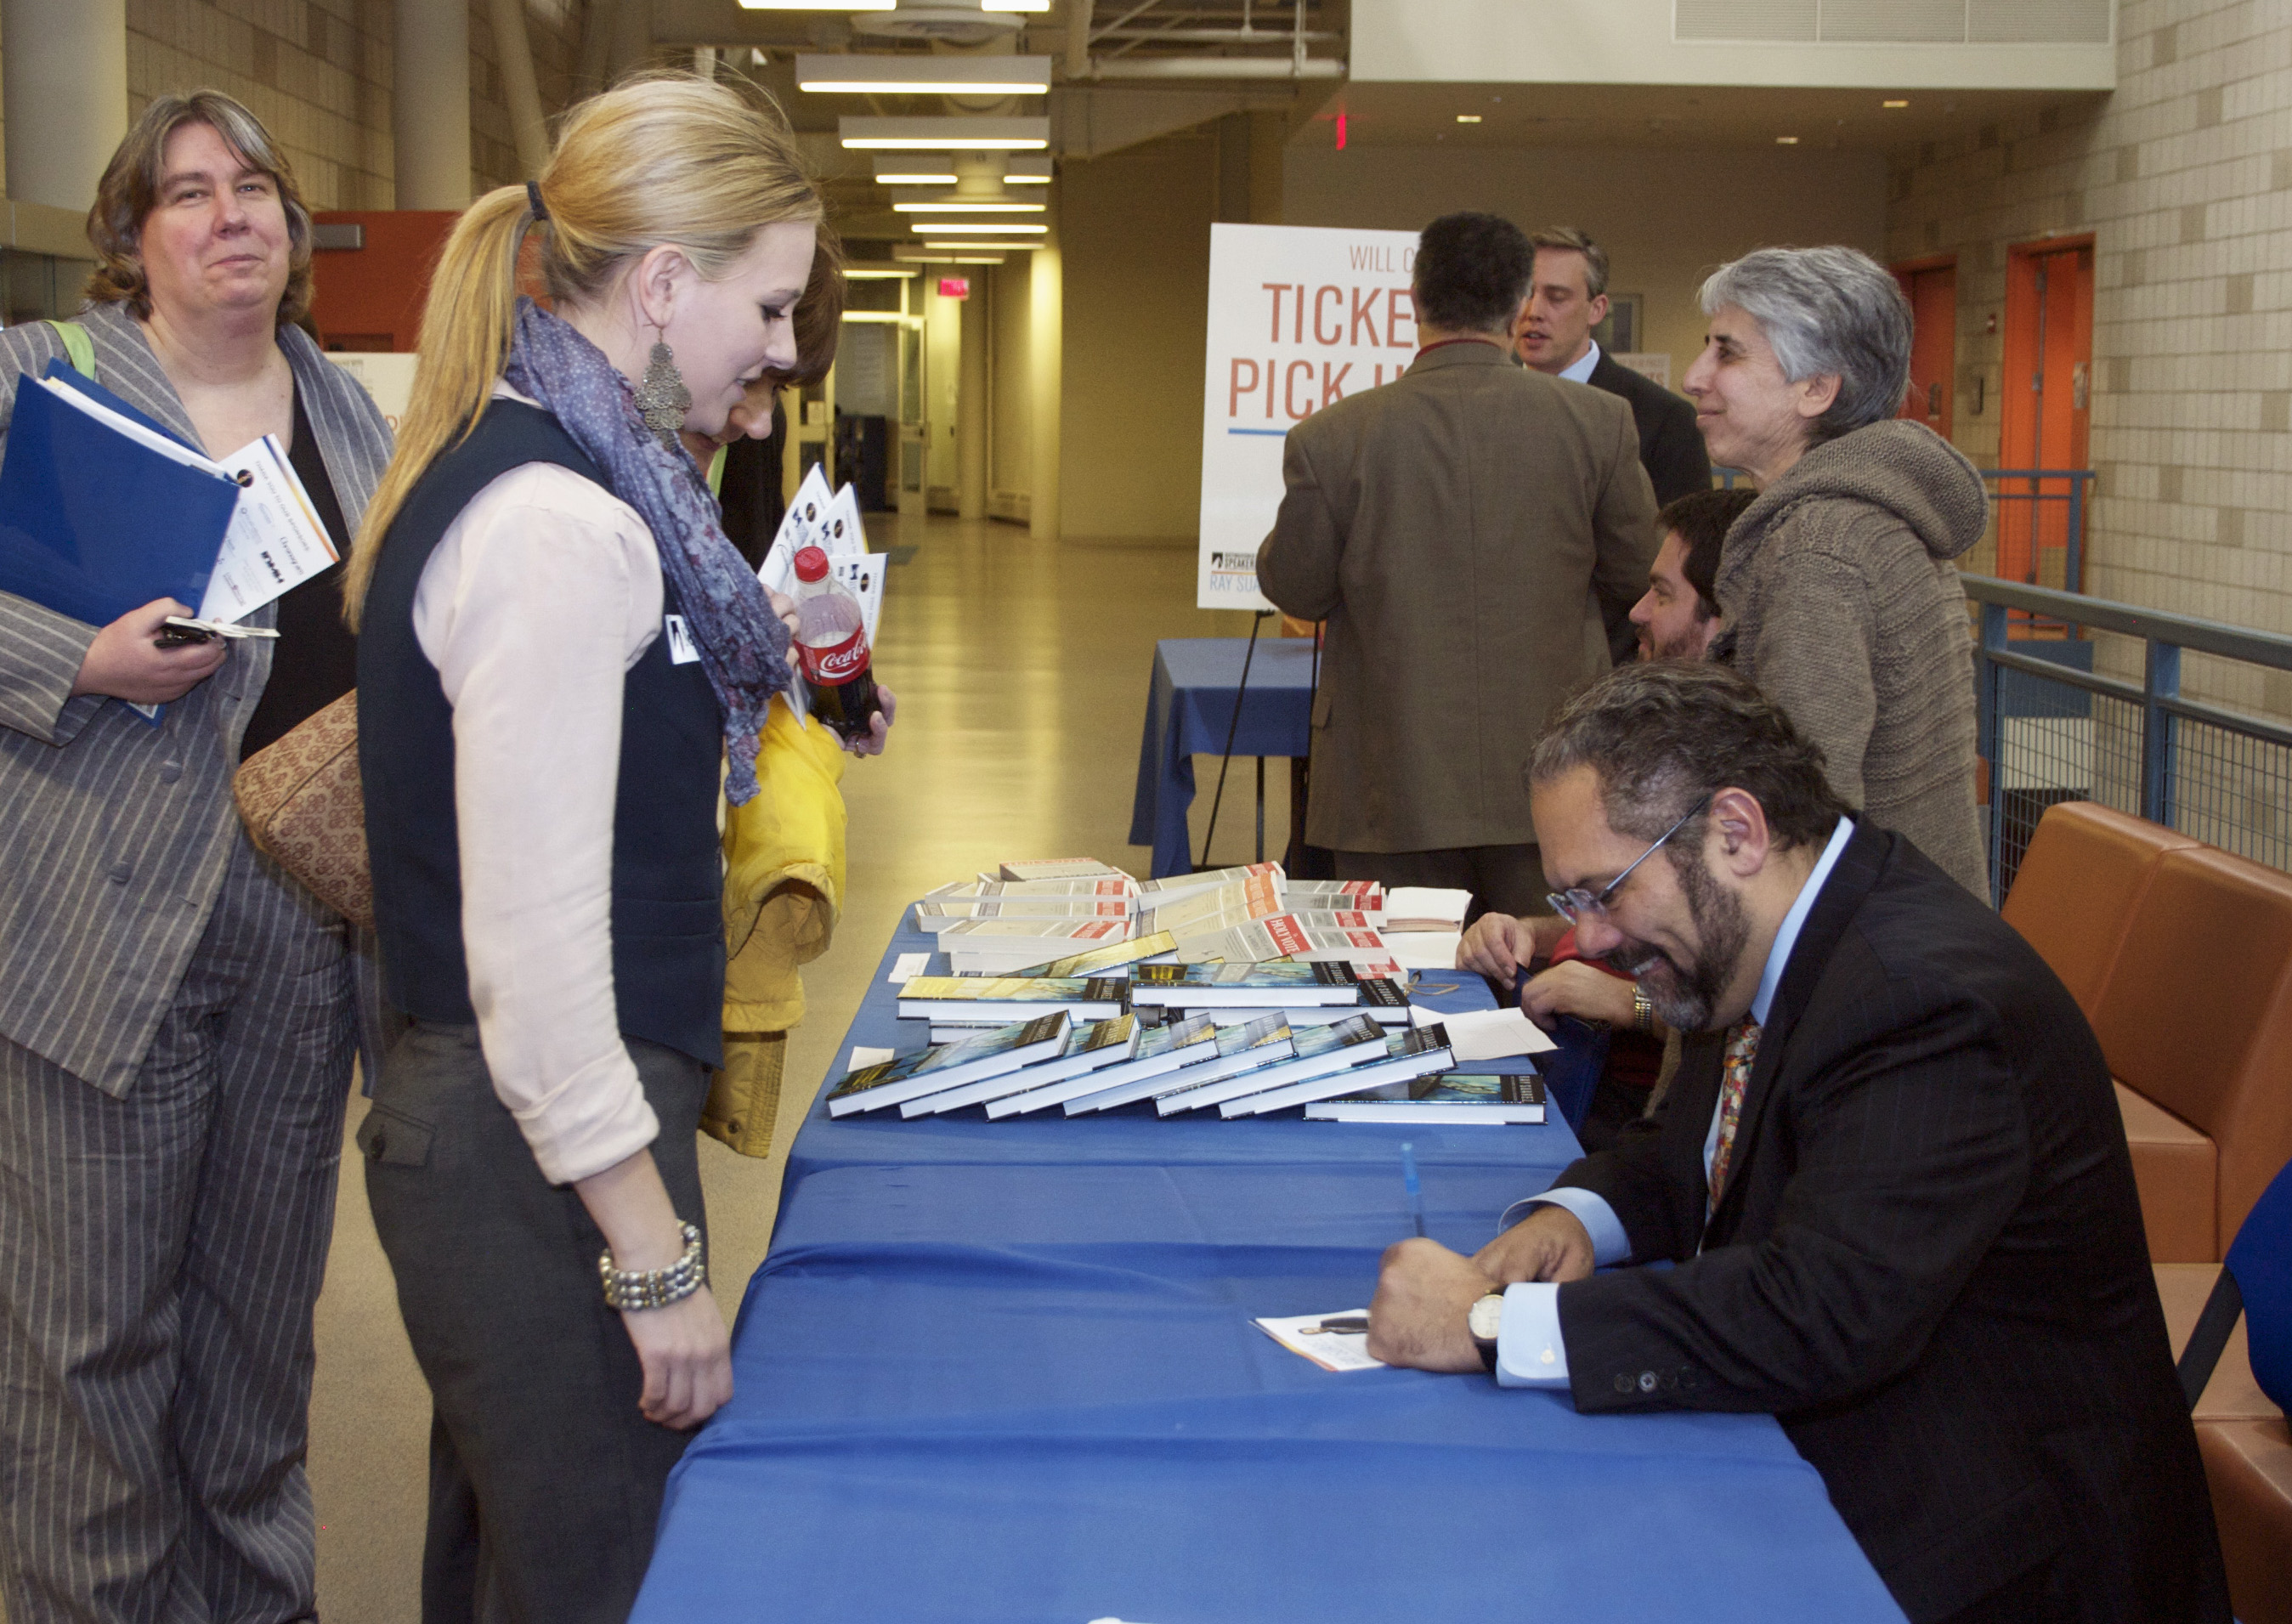 Distinguished Speaker Ray Suarez speaks with student Maggie Vasconi. Photo by Debra Trager.